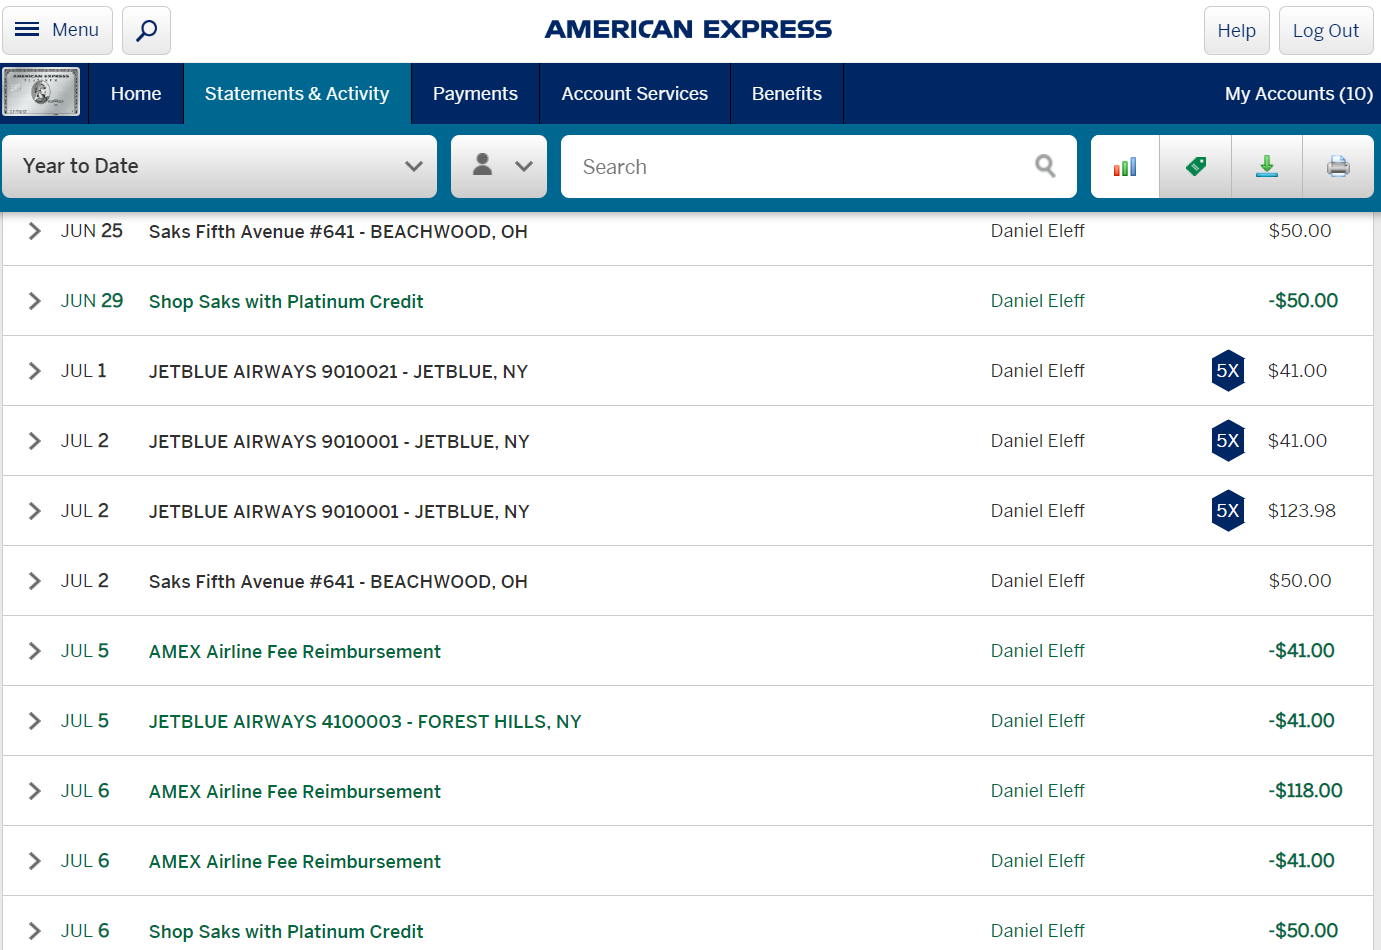 Here Is How I Used My 2019 AMEX Airline Fee Credit, How Will